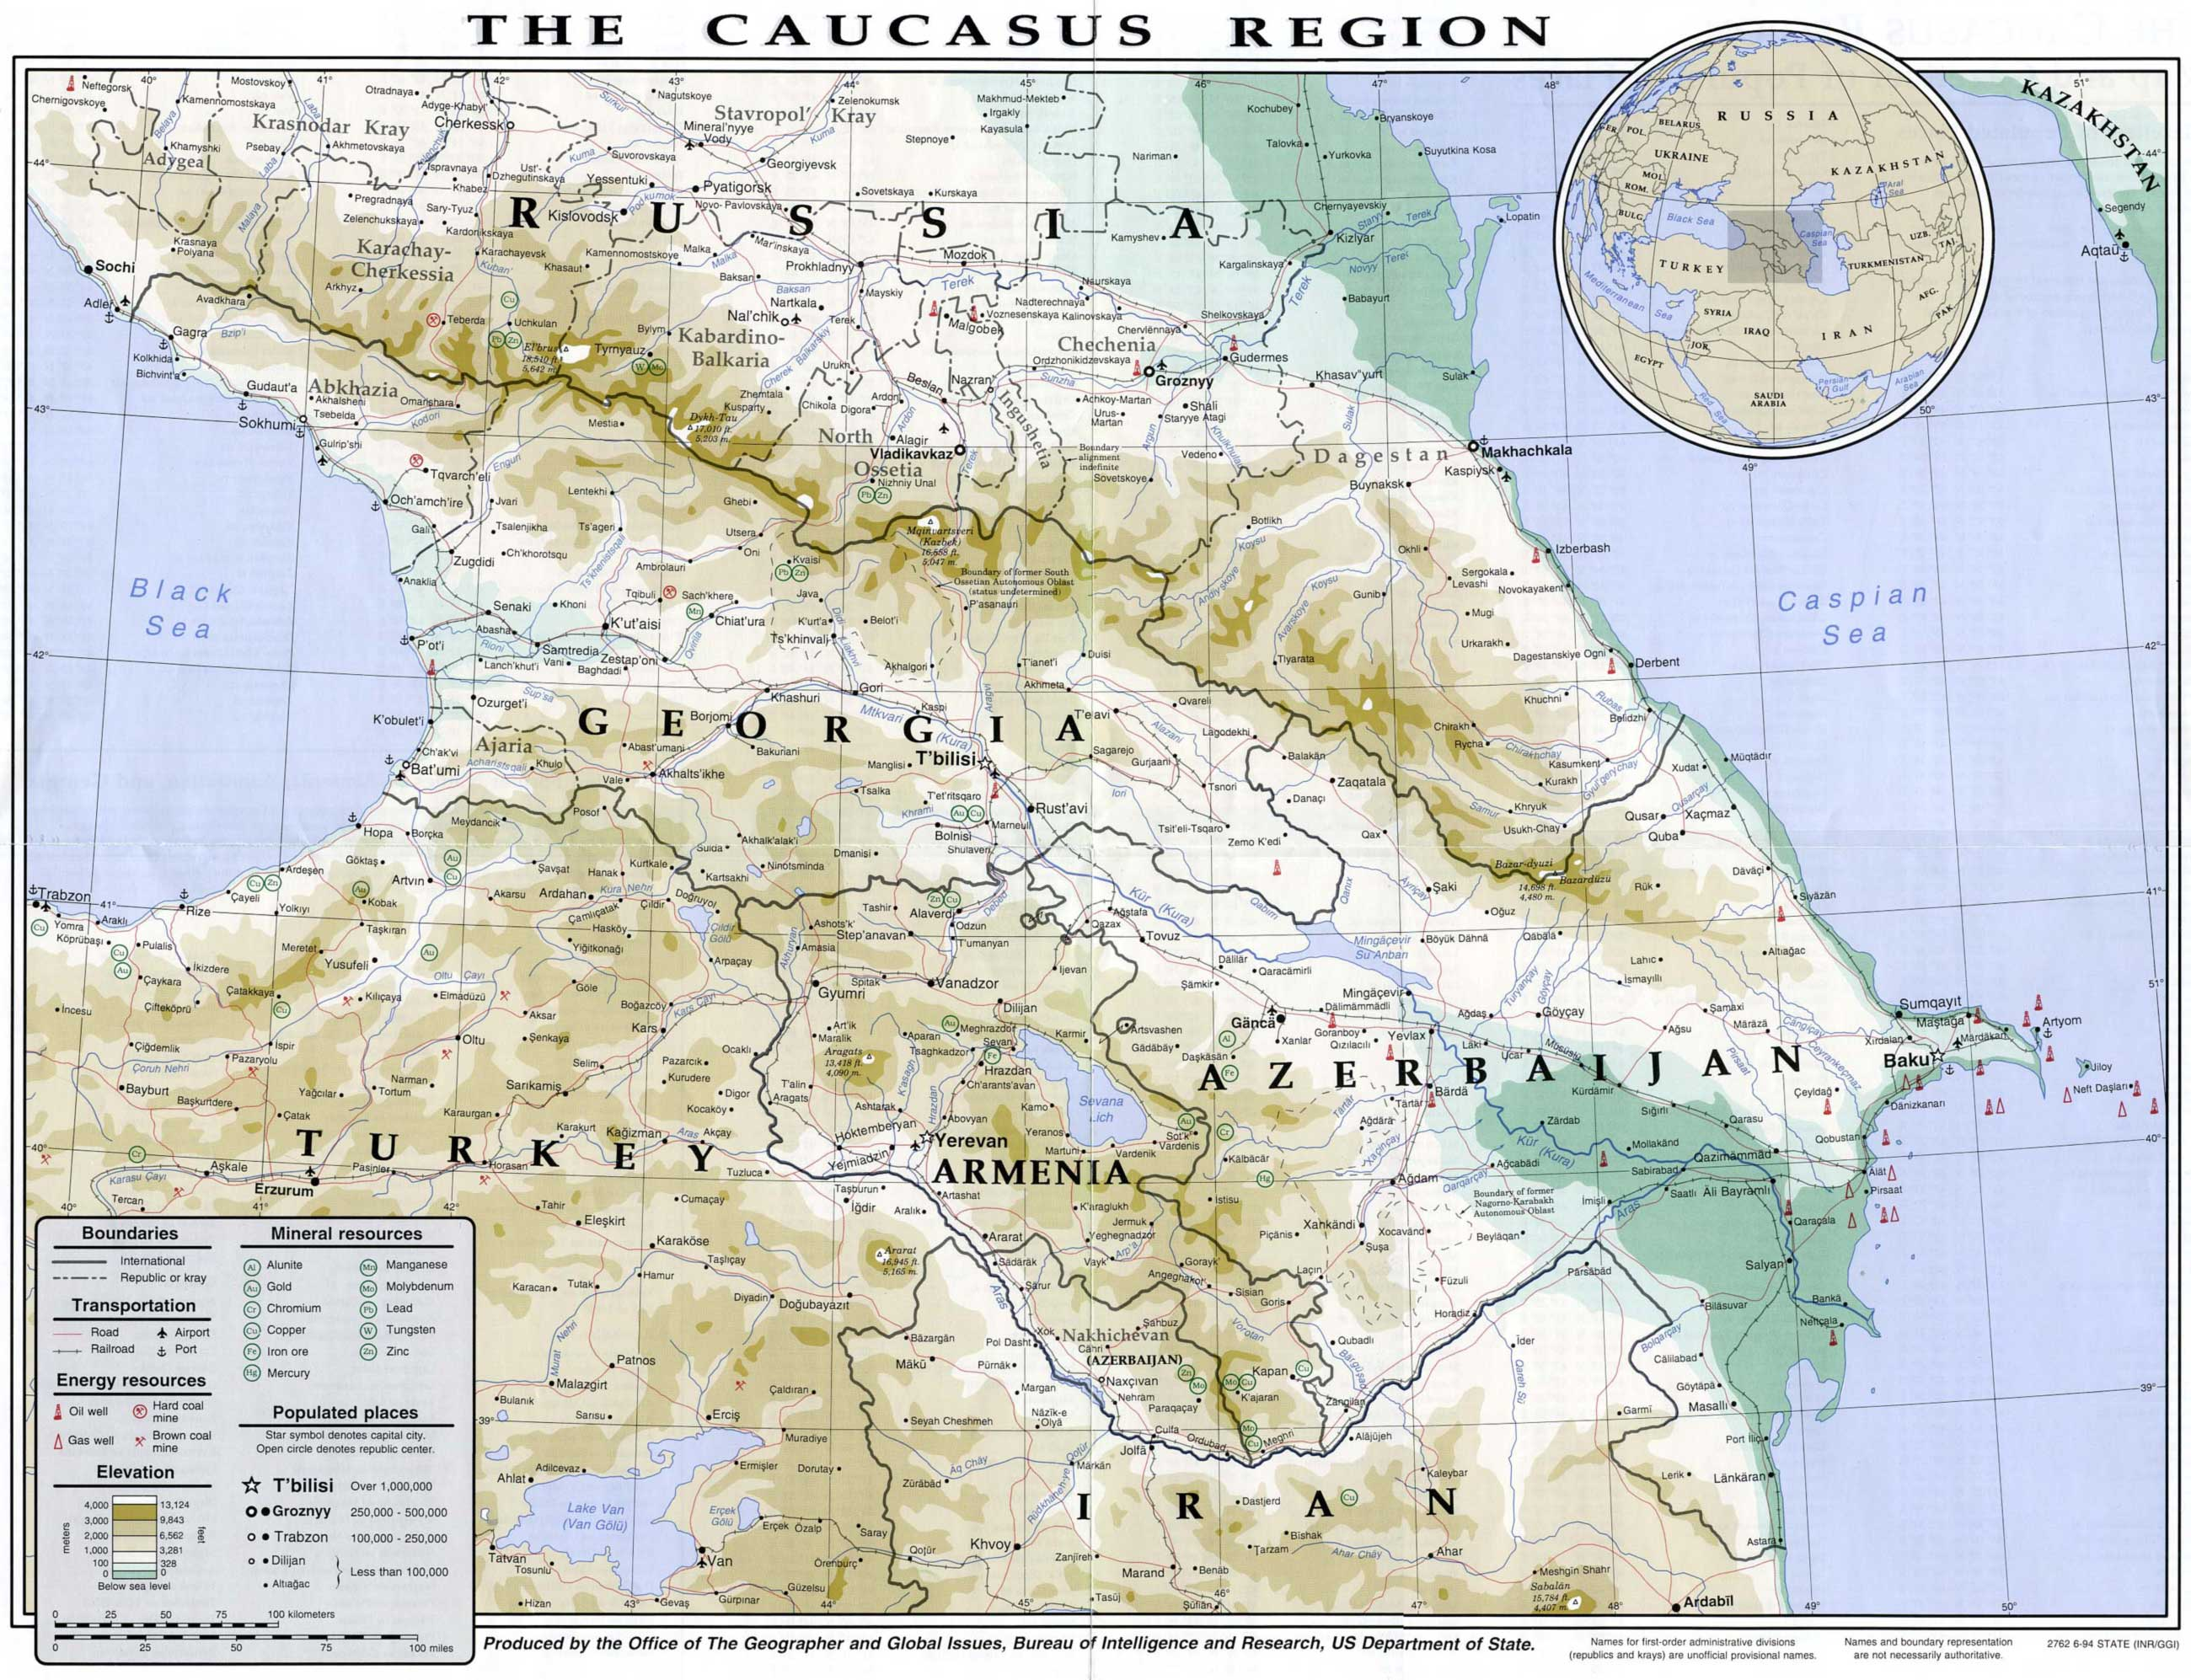 Caucasus Region 1994 6 large map